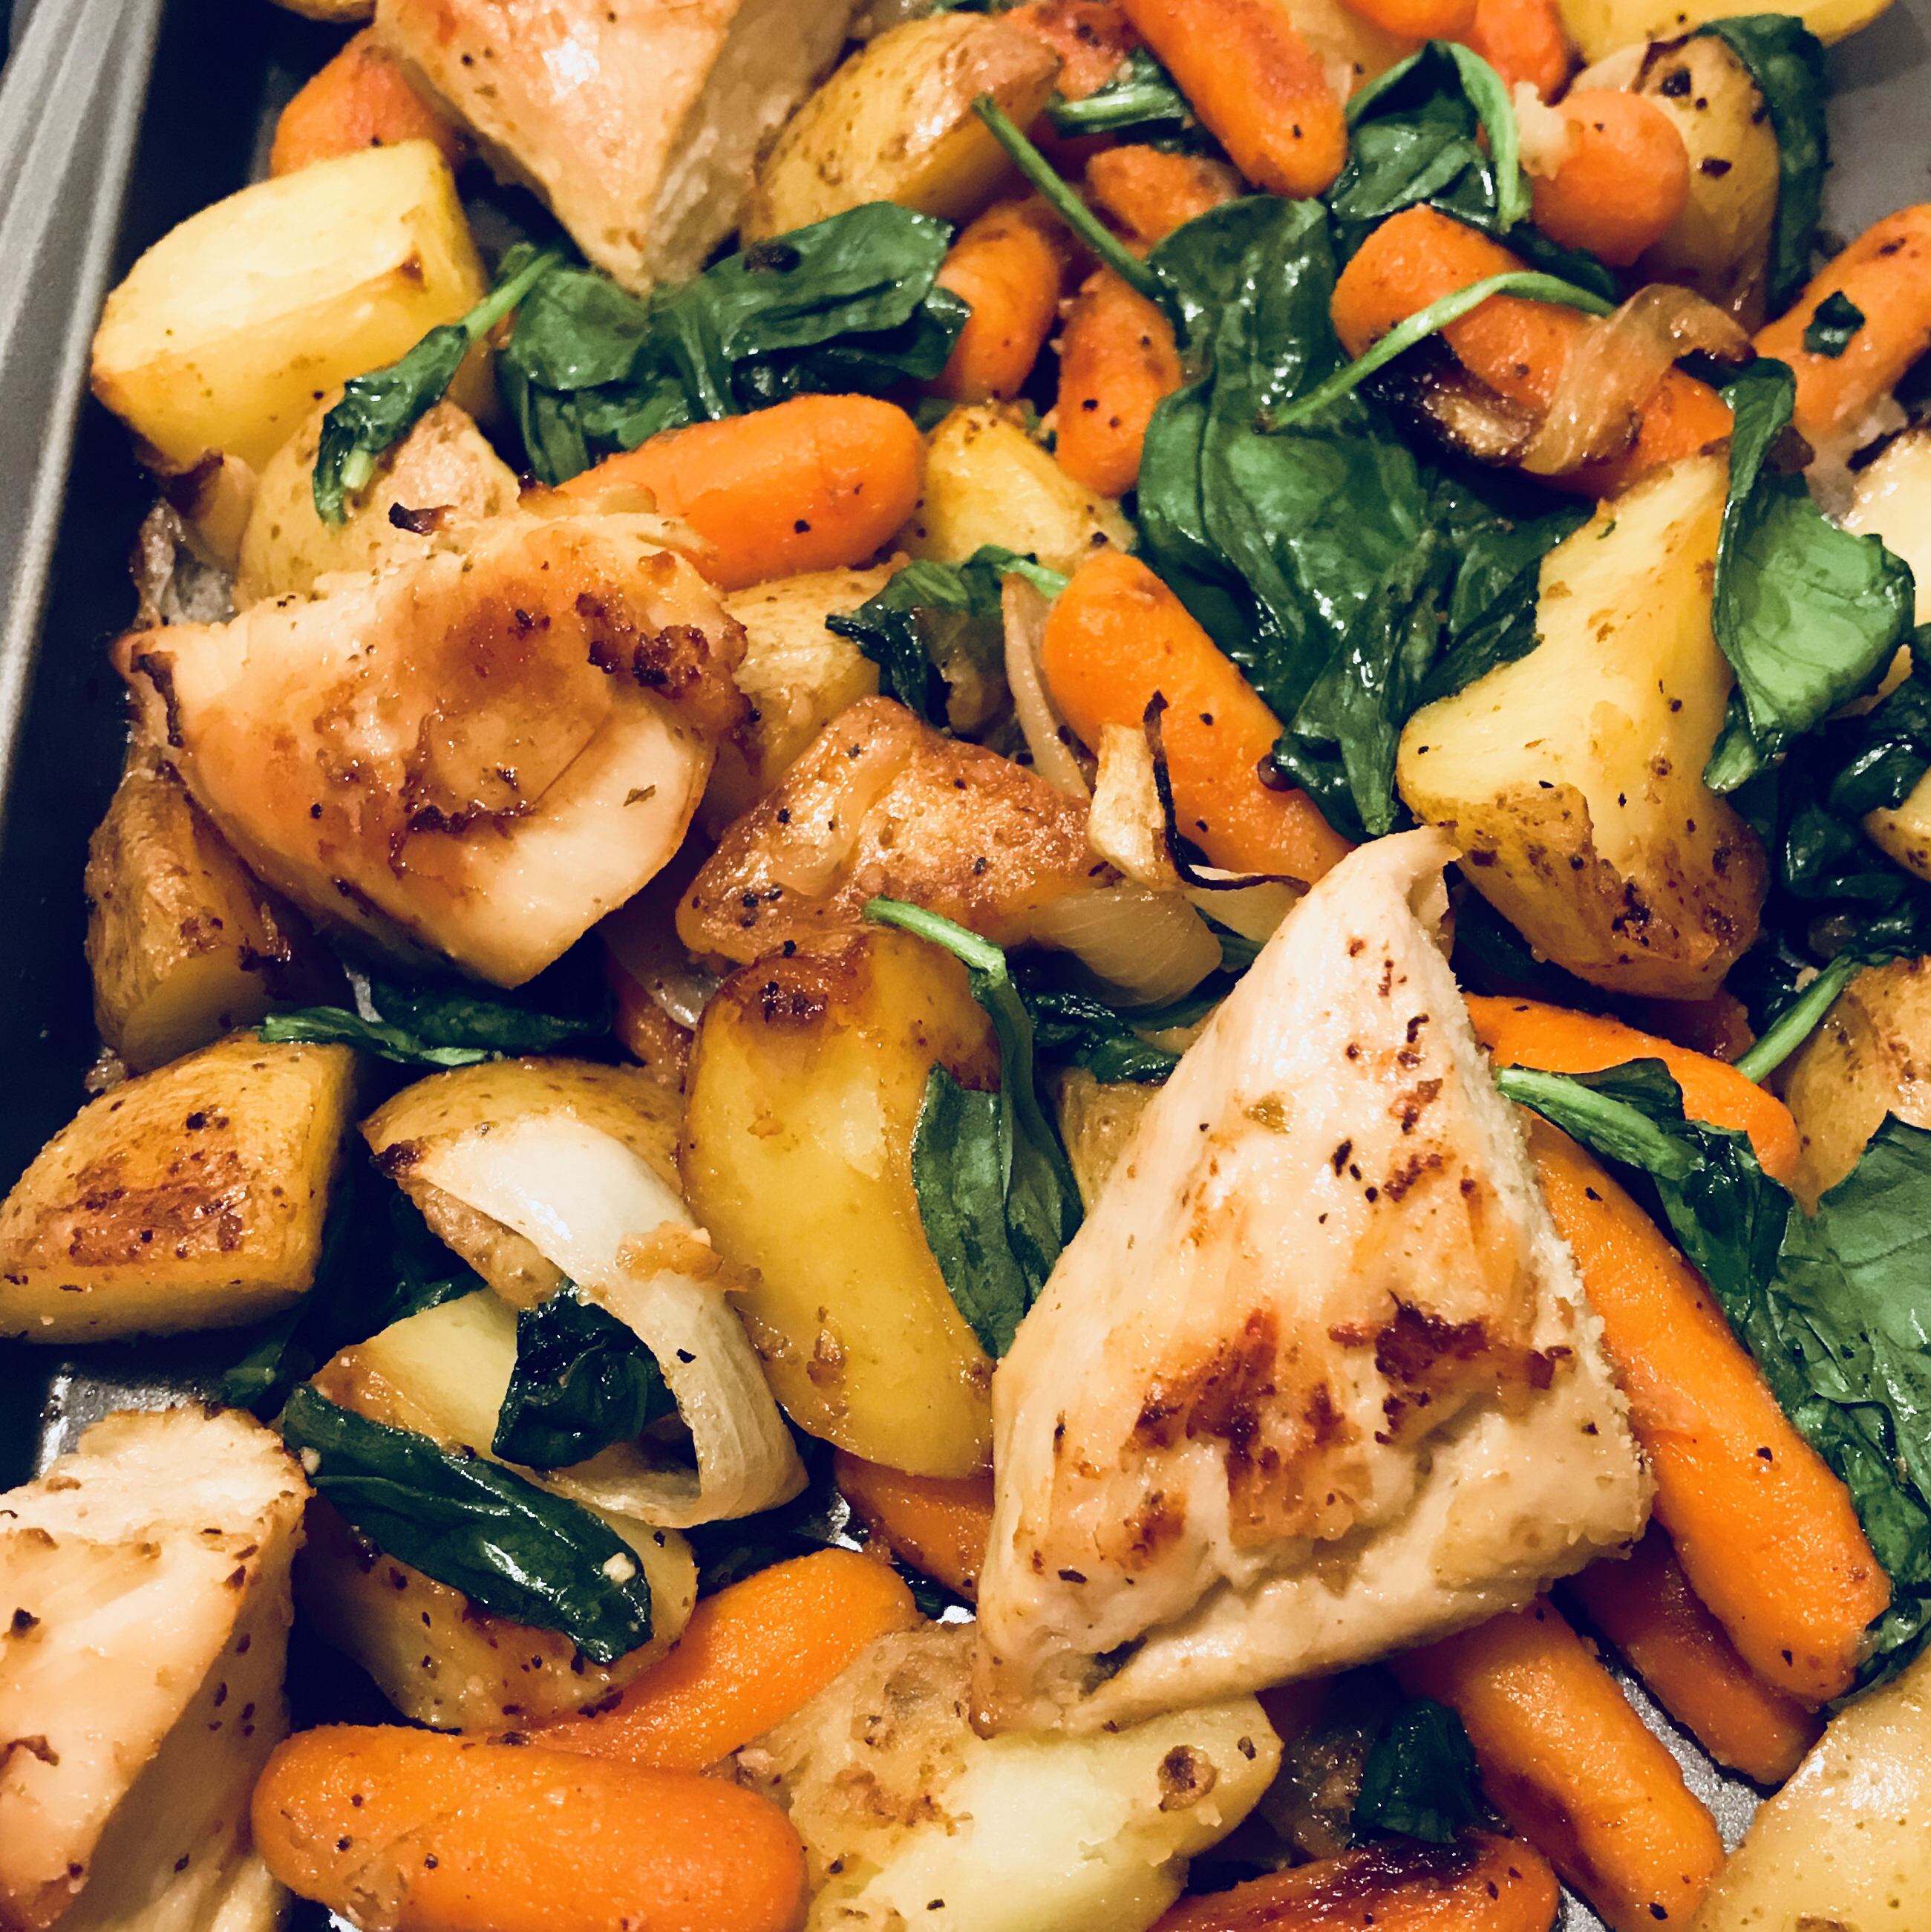 Baked Chicken Breasts and Vegetables anghatami